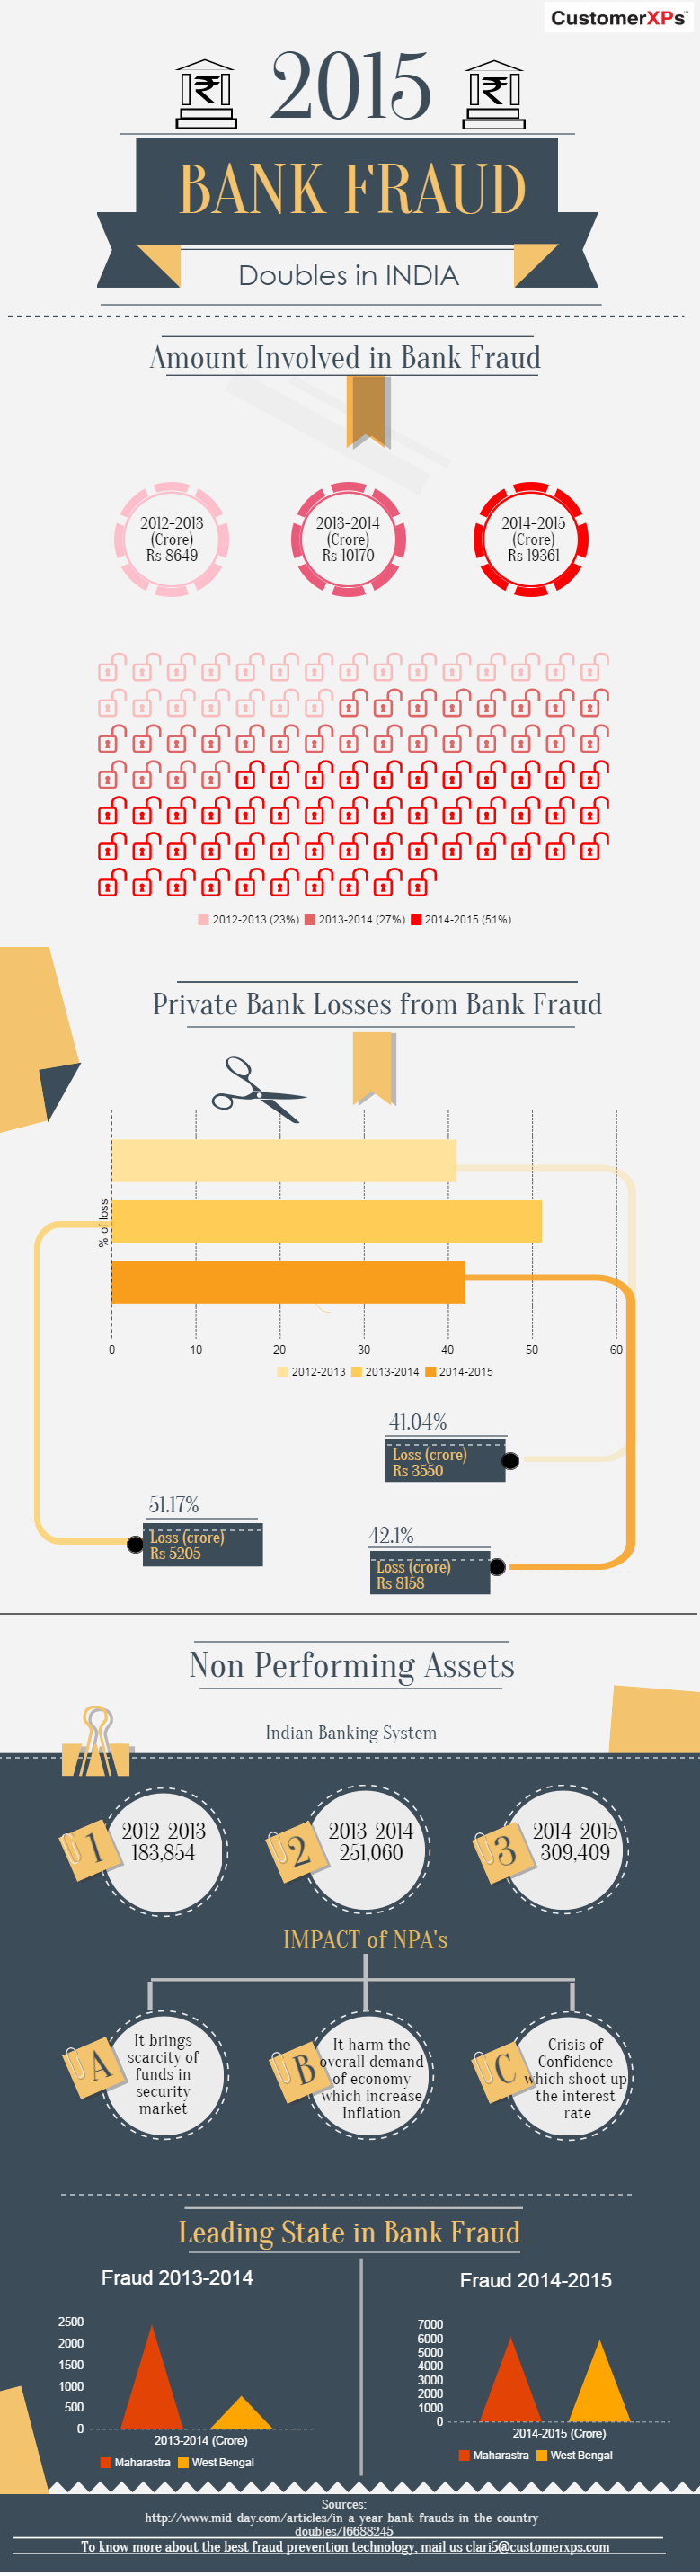 Banking Fraud in India